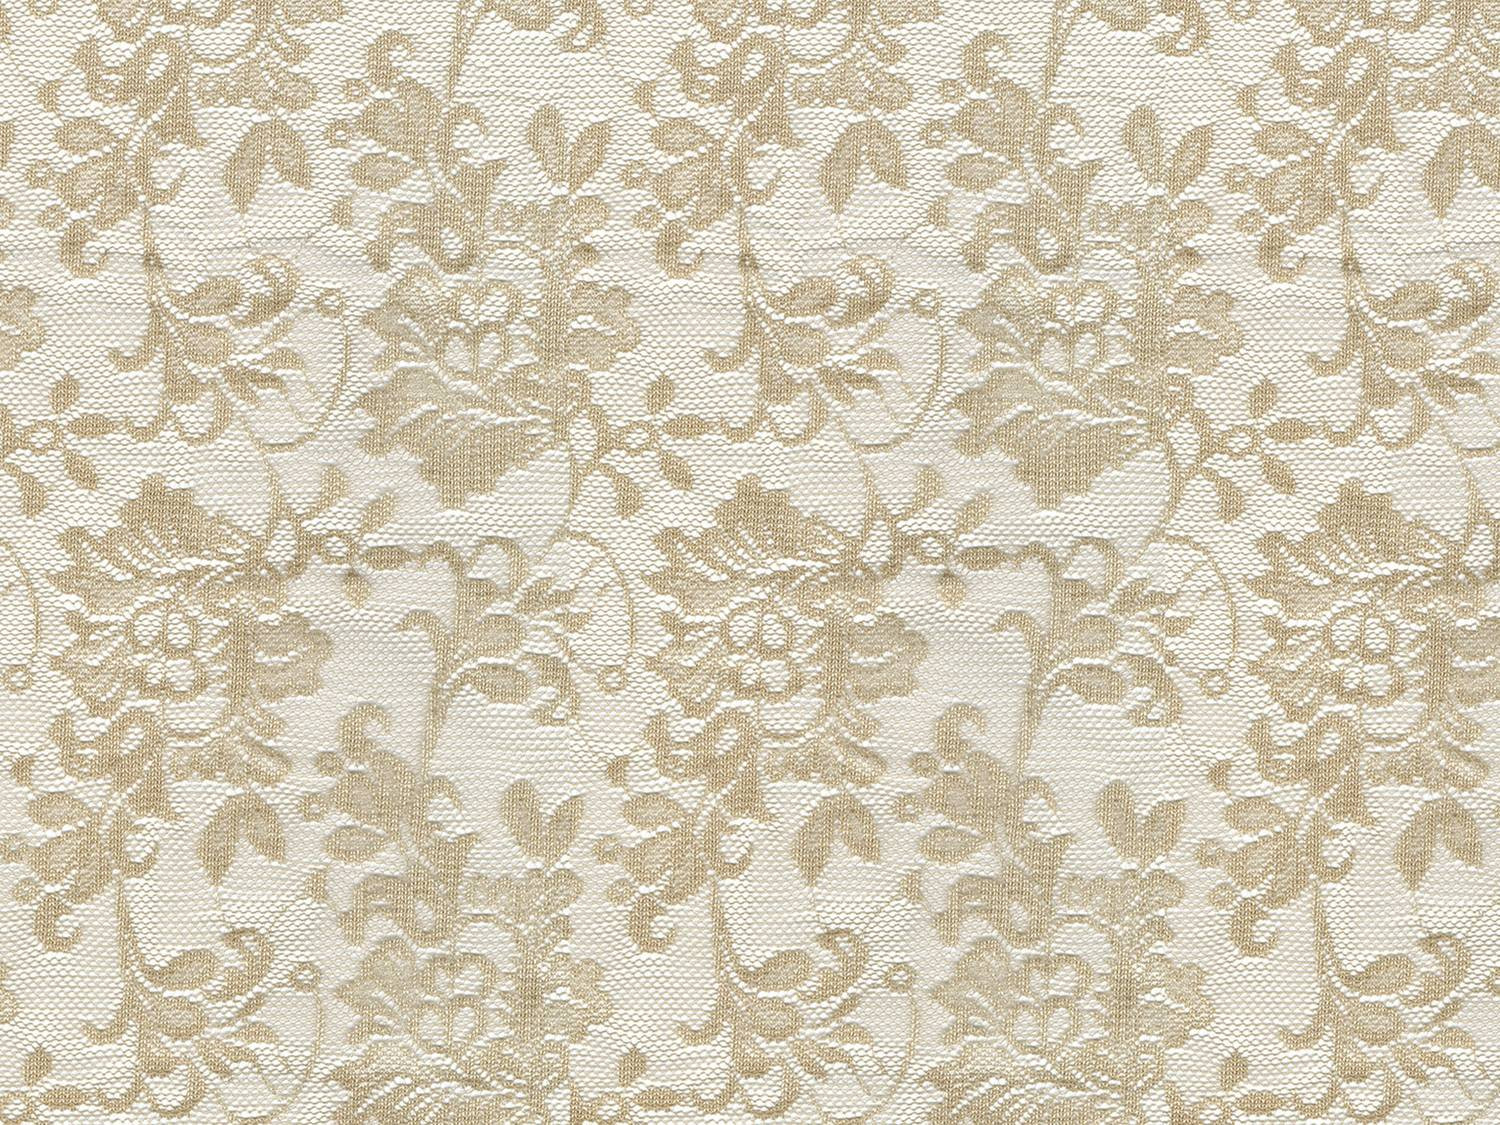 162/24 Oriana/Beige Коллекция: Nuance Collection